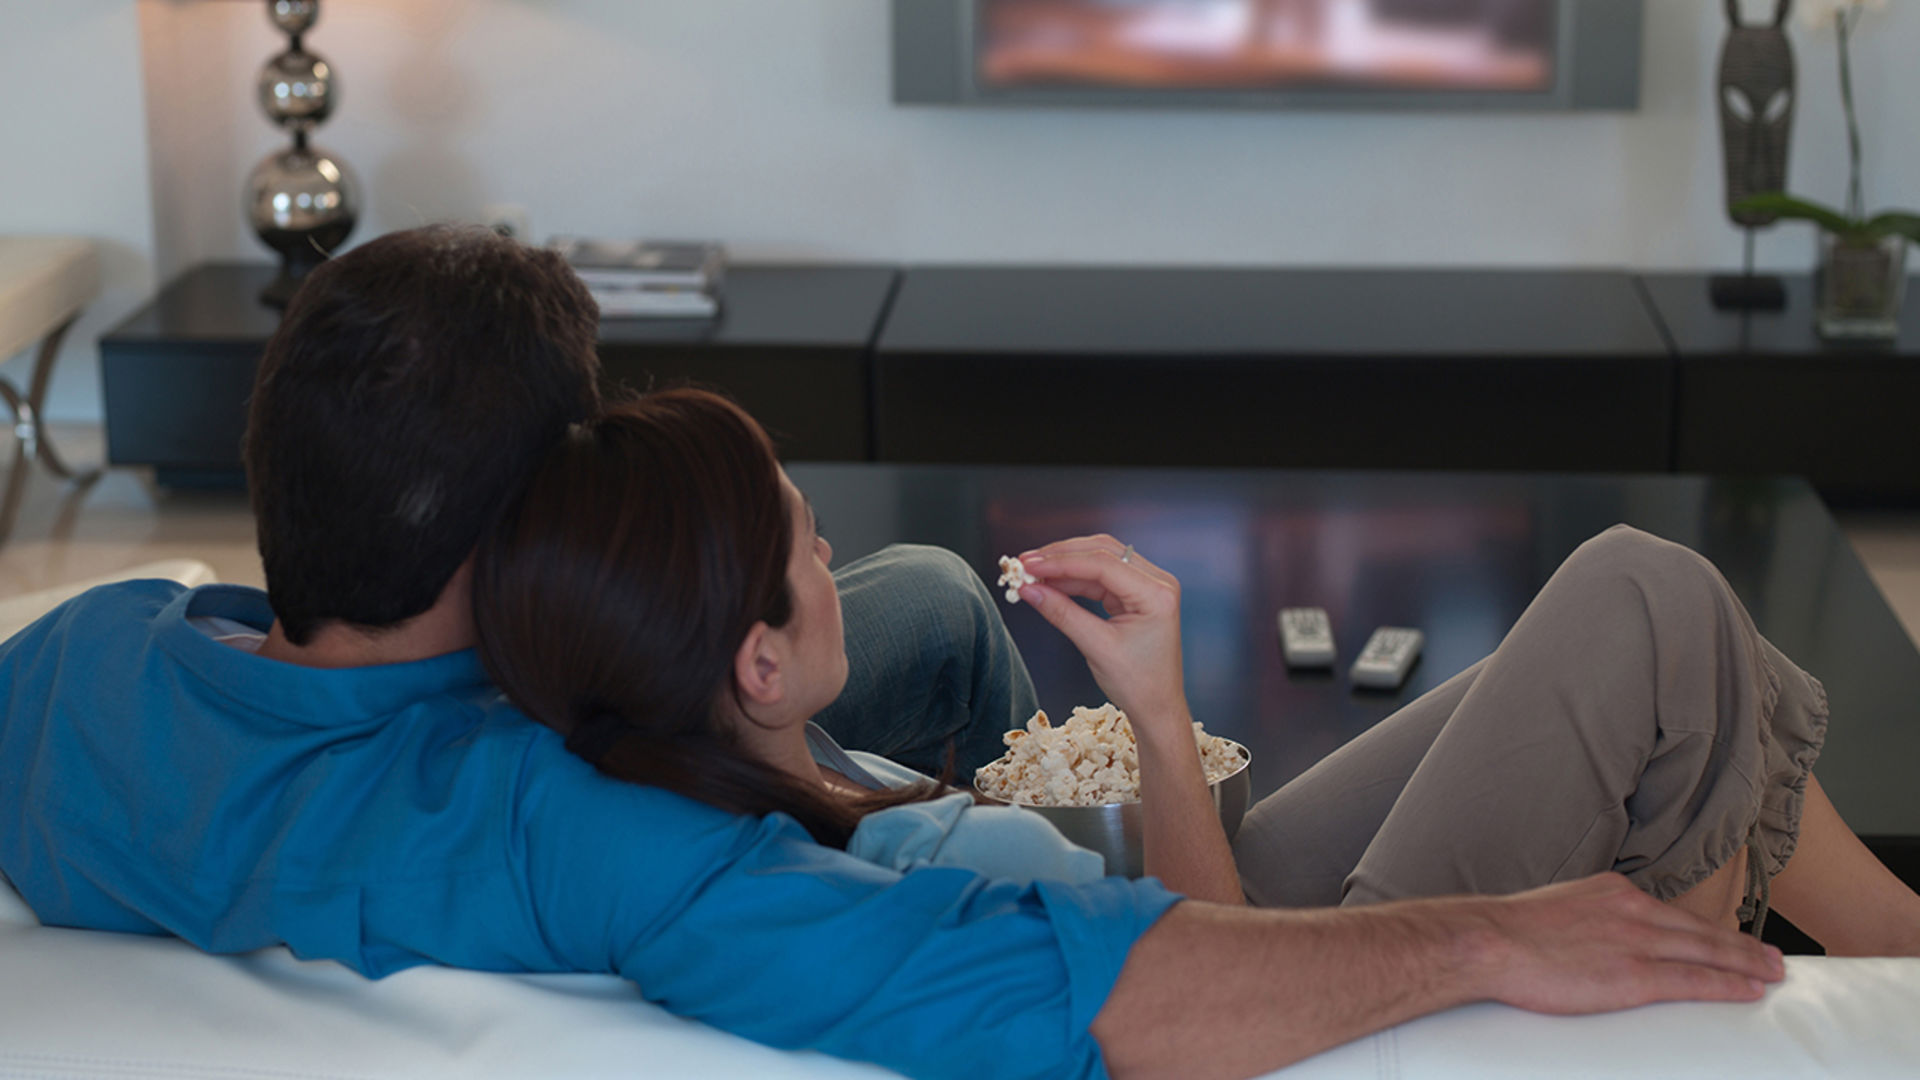 5 Ideas For Date Night At Home